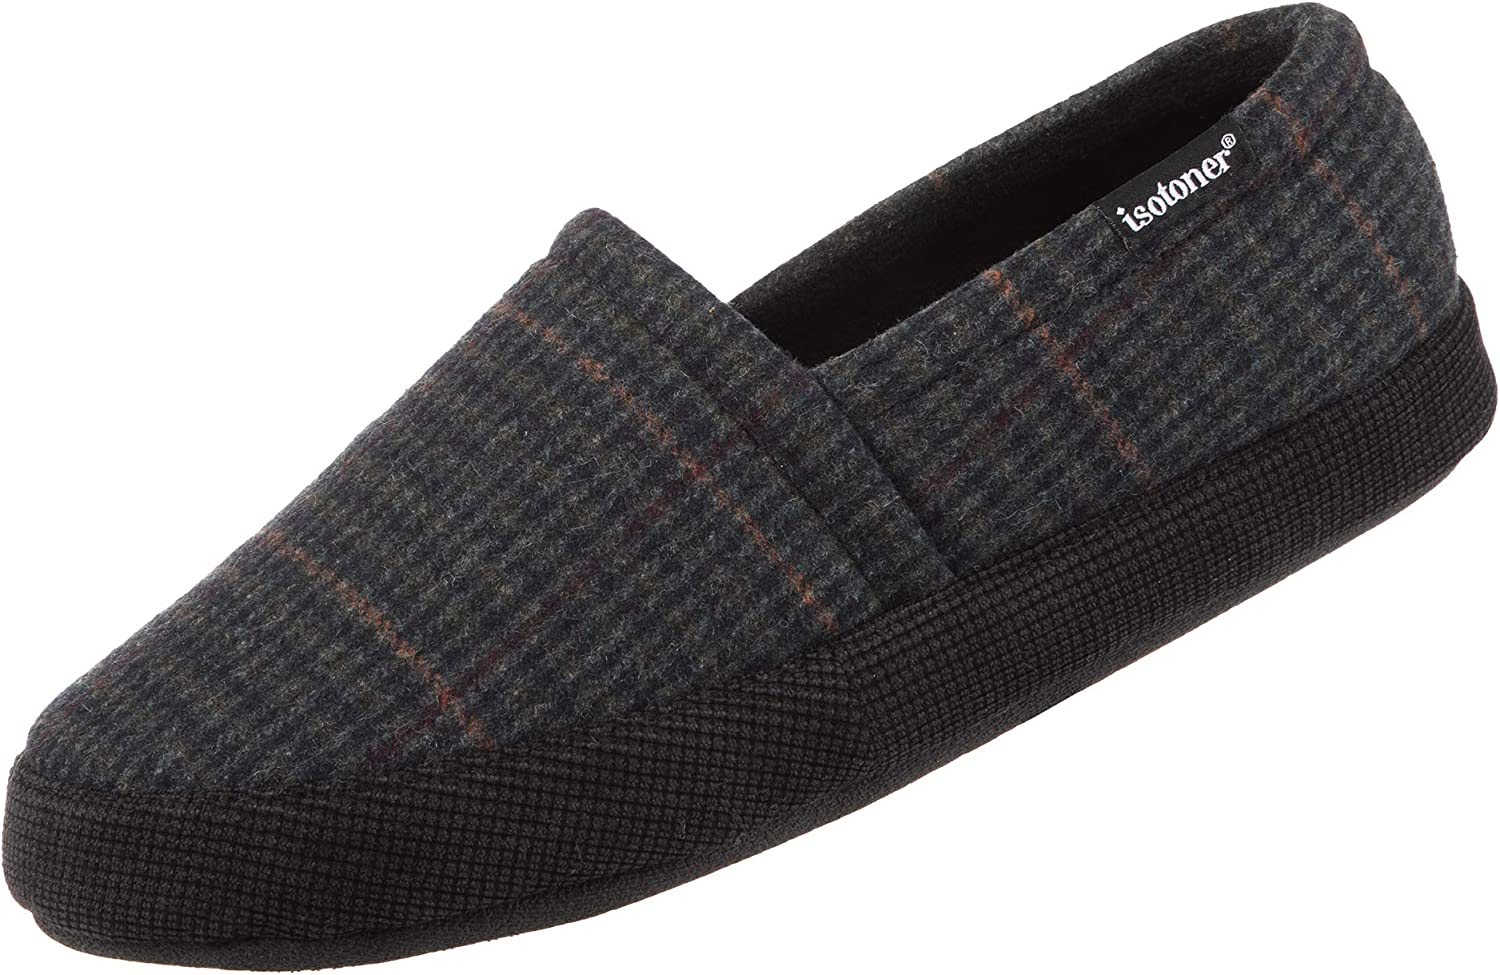 isotoner Men's Plaid Closed Back Slipper with Cooling Memory Foam for Indoor/Outdoor Comfort